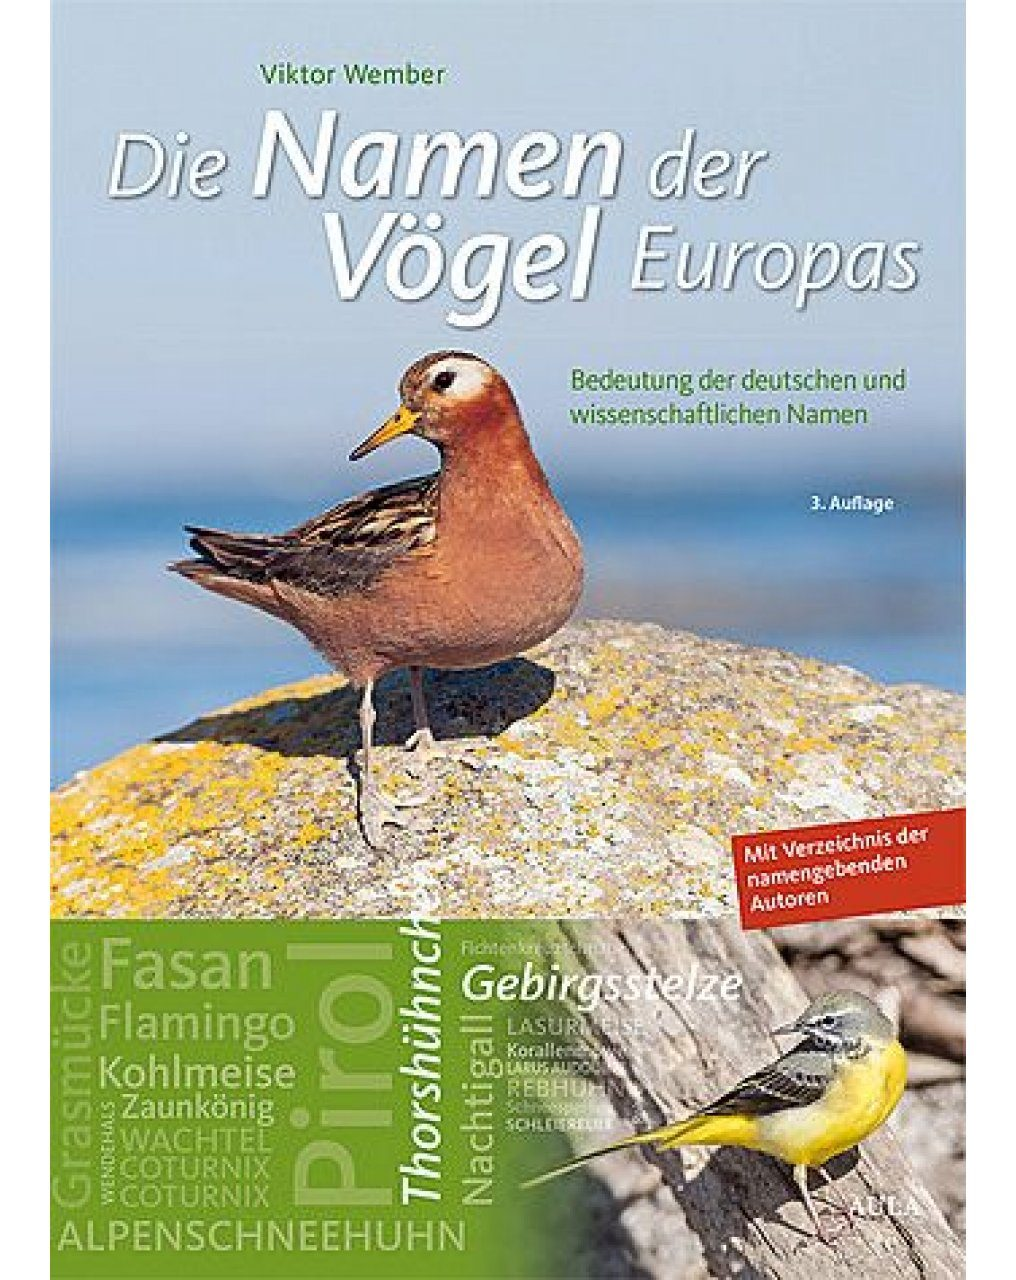 Die Namen der Vögel Europas: Bedeutung der Deutschen und Wissenschaftlichen Namen [The Names of European Birds: Meaning of German and Scientific Names]